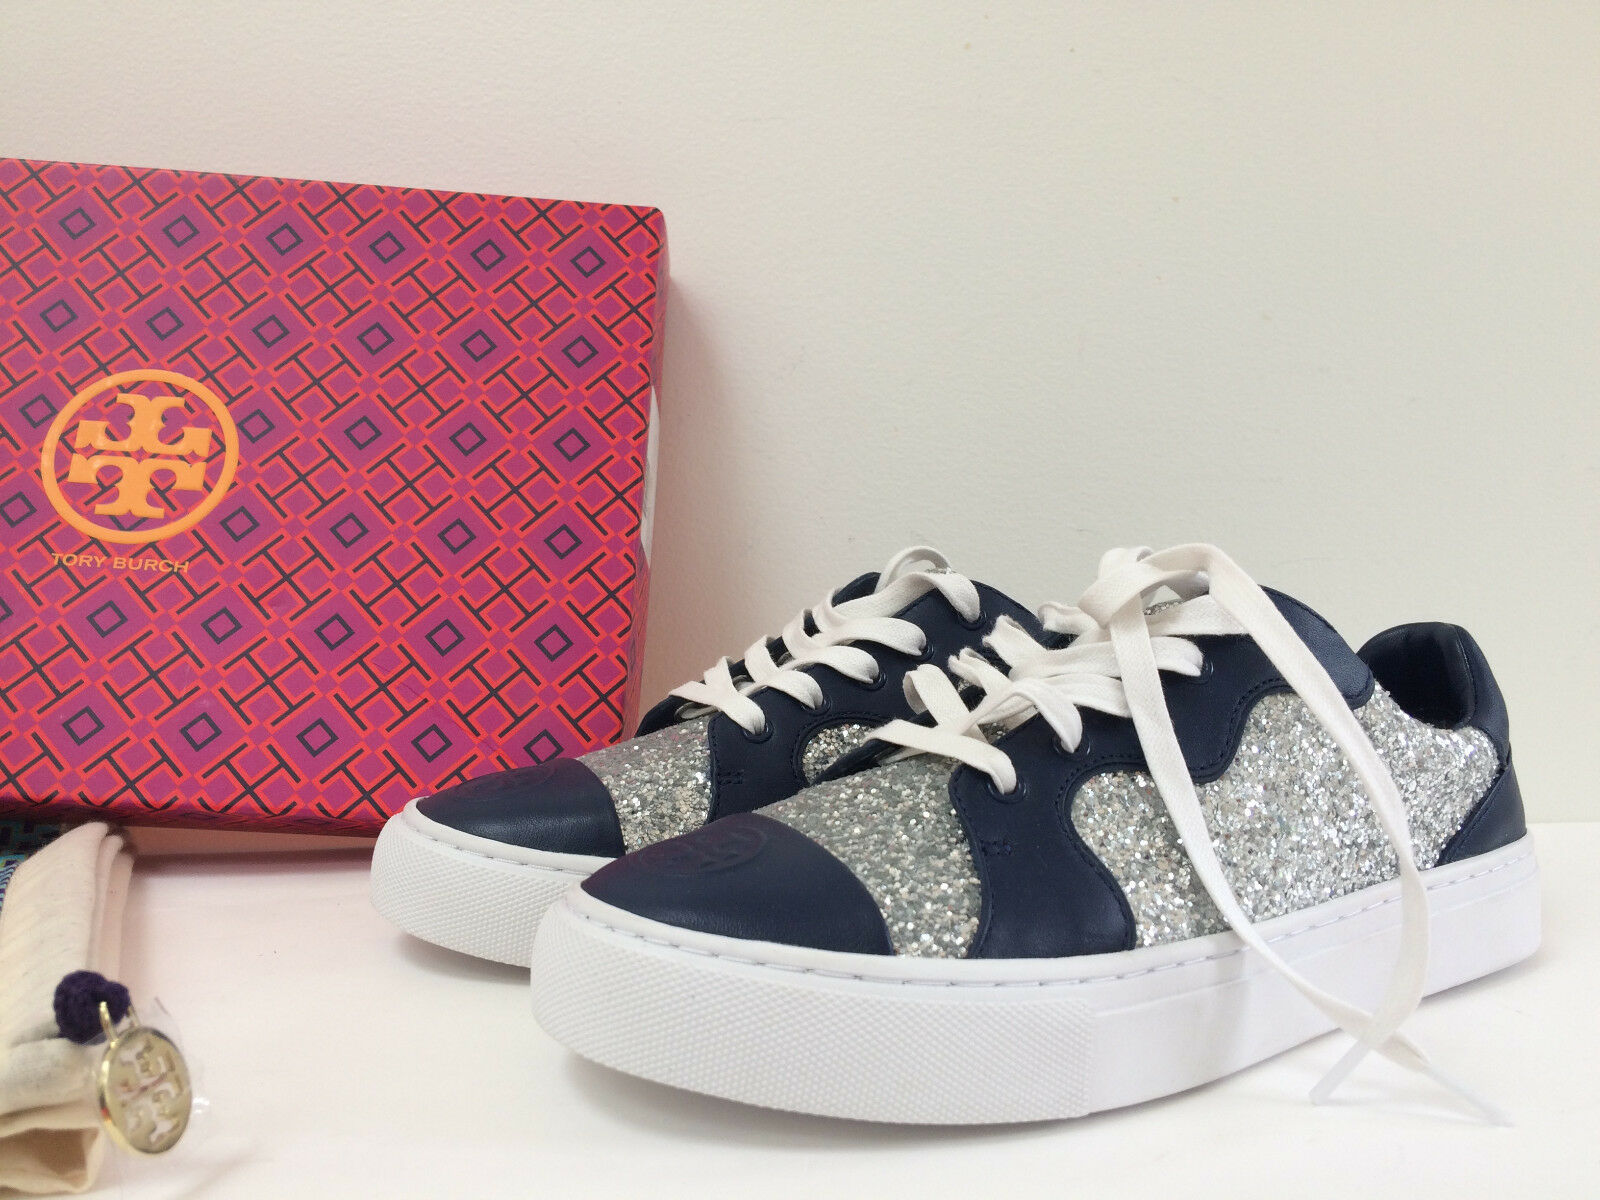 NIB TORY BURCH 7.5M 9.5M Milo Silver Glitter/Navy Leather Lace Up Sneakers New